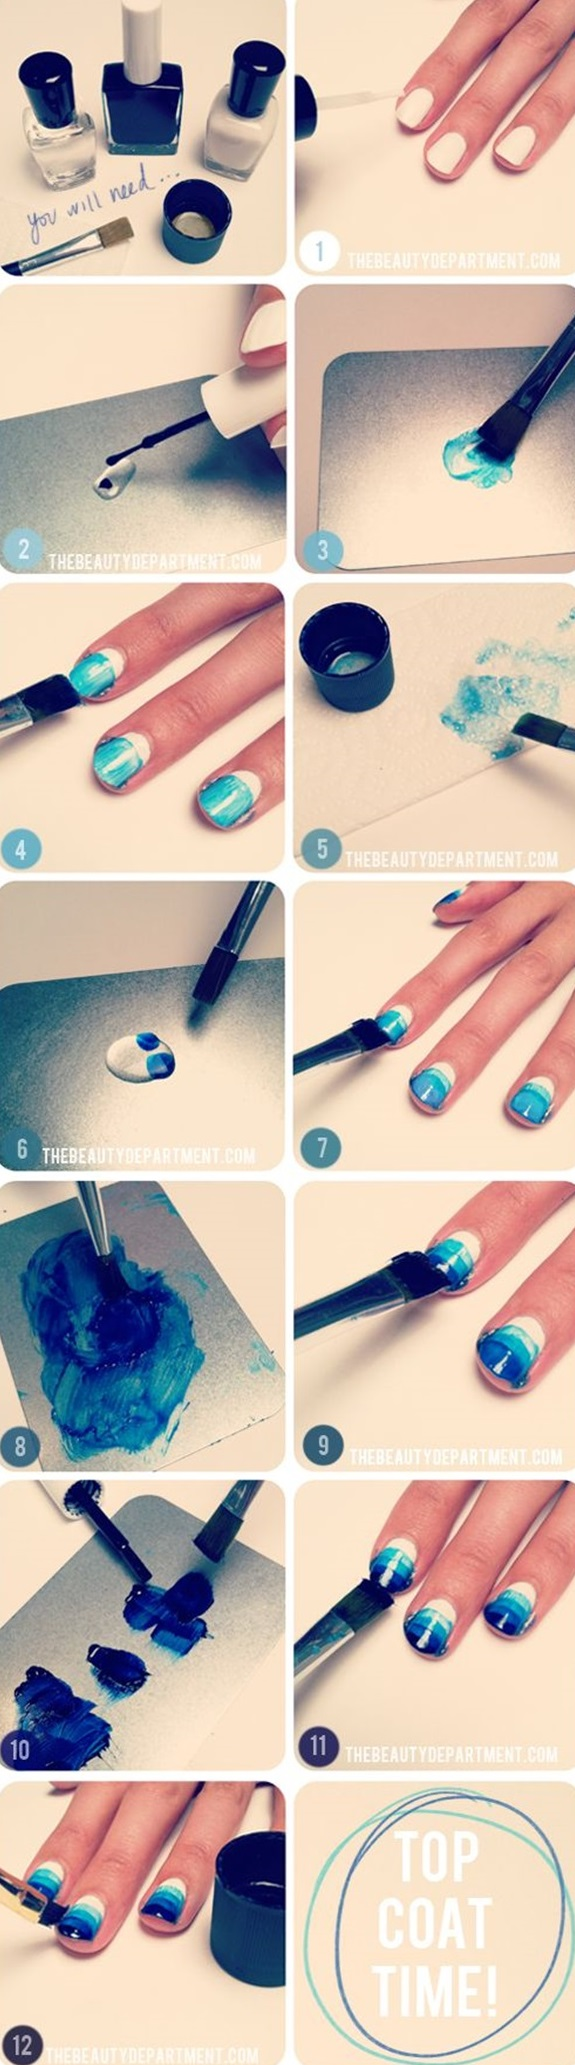 DIY Nail art designs (11)